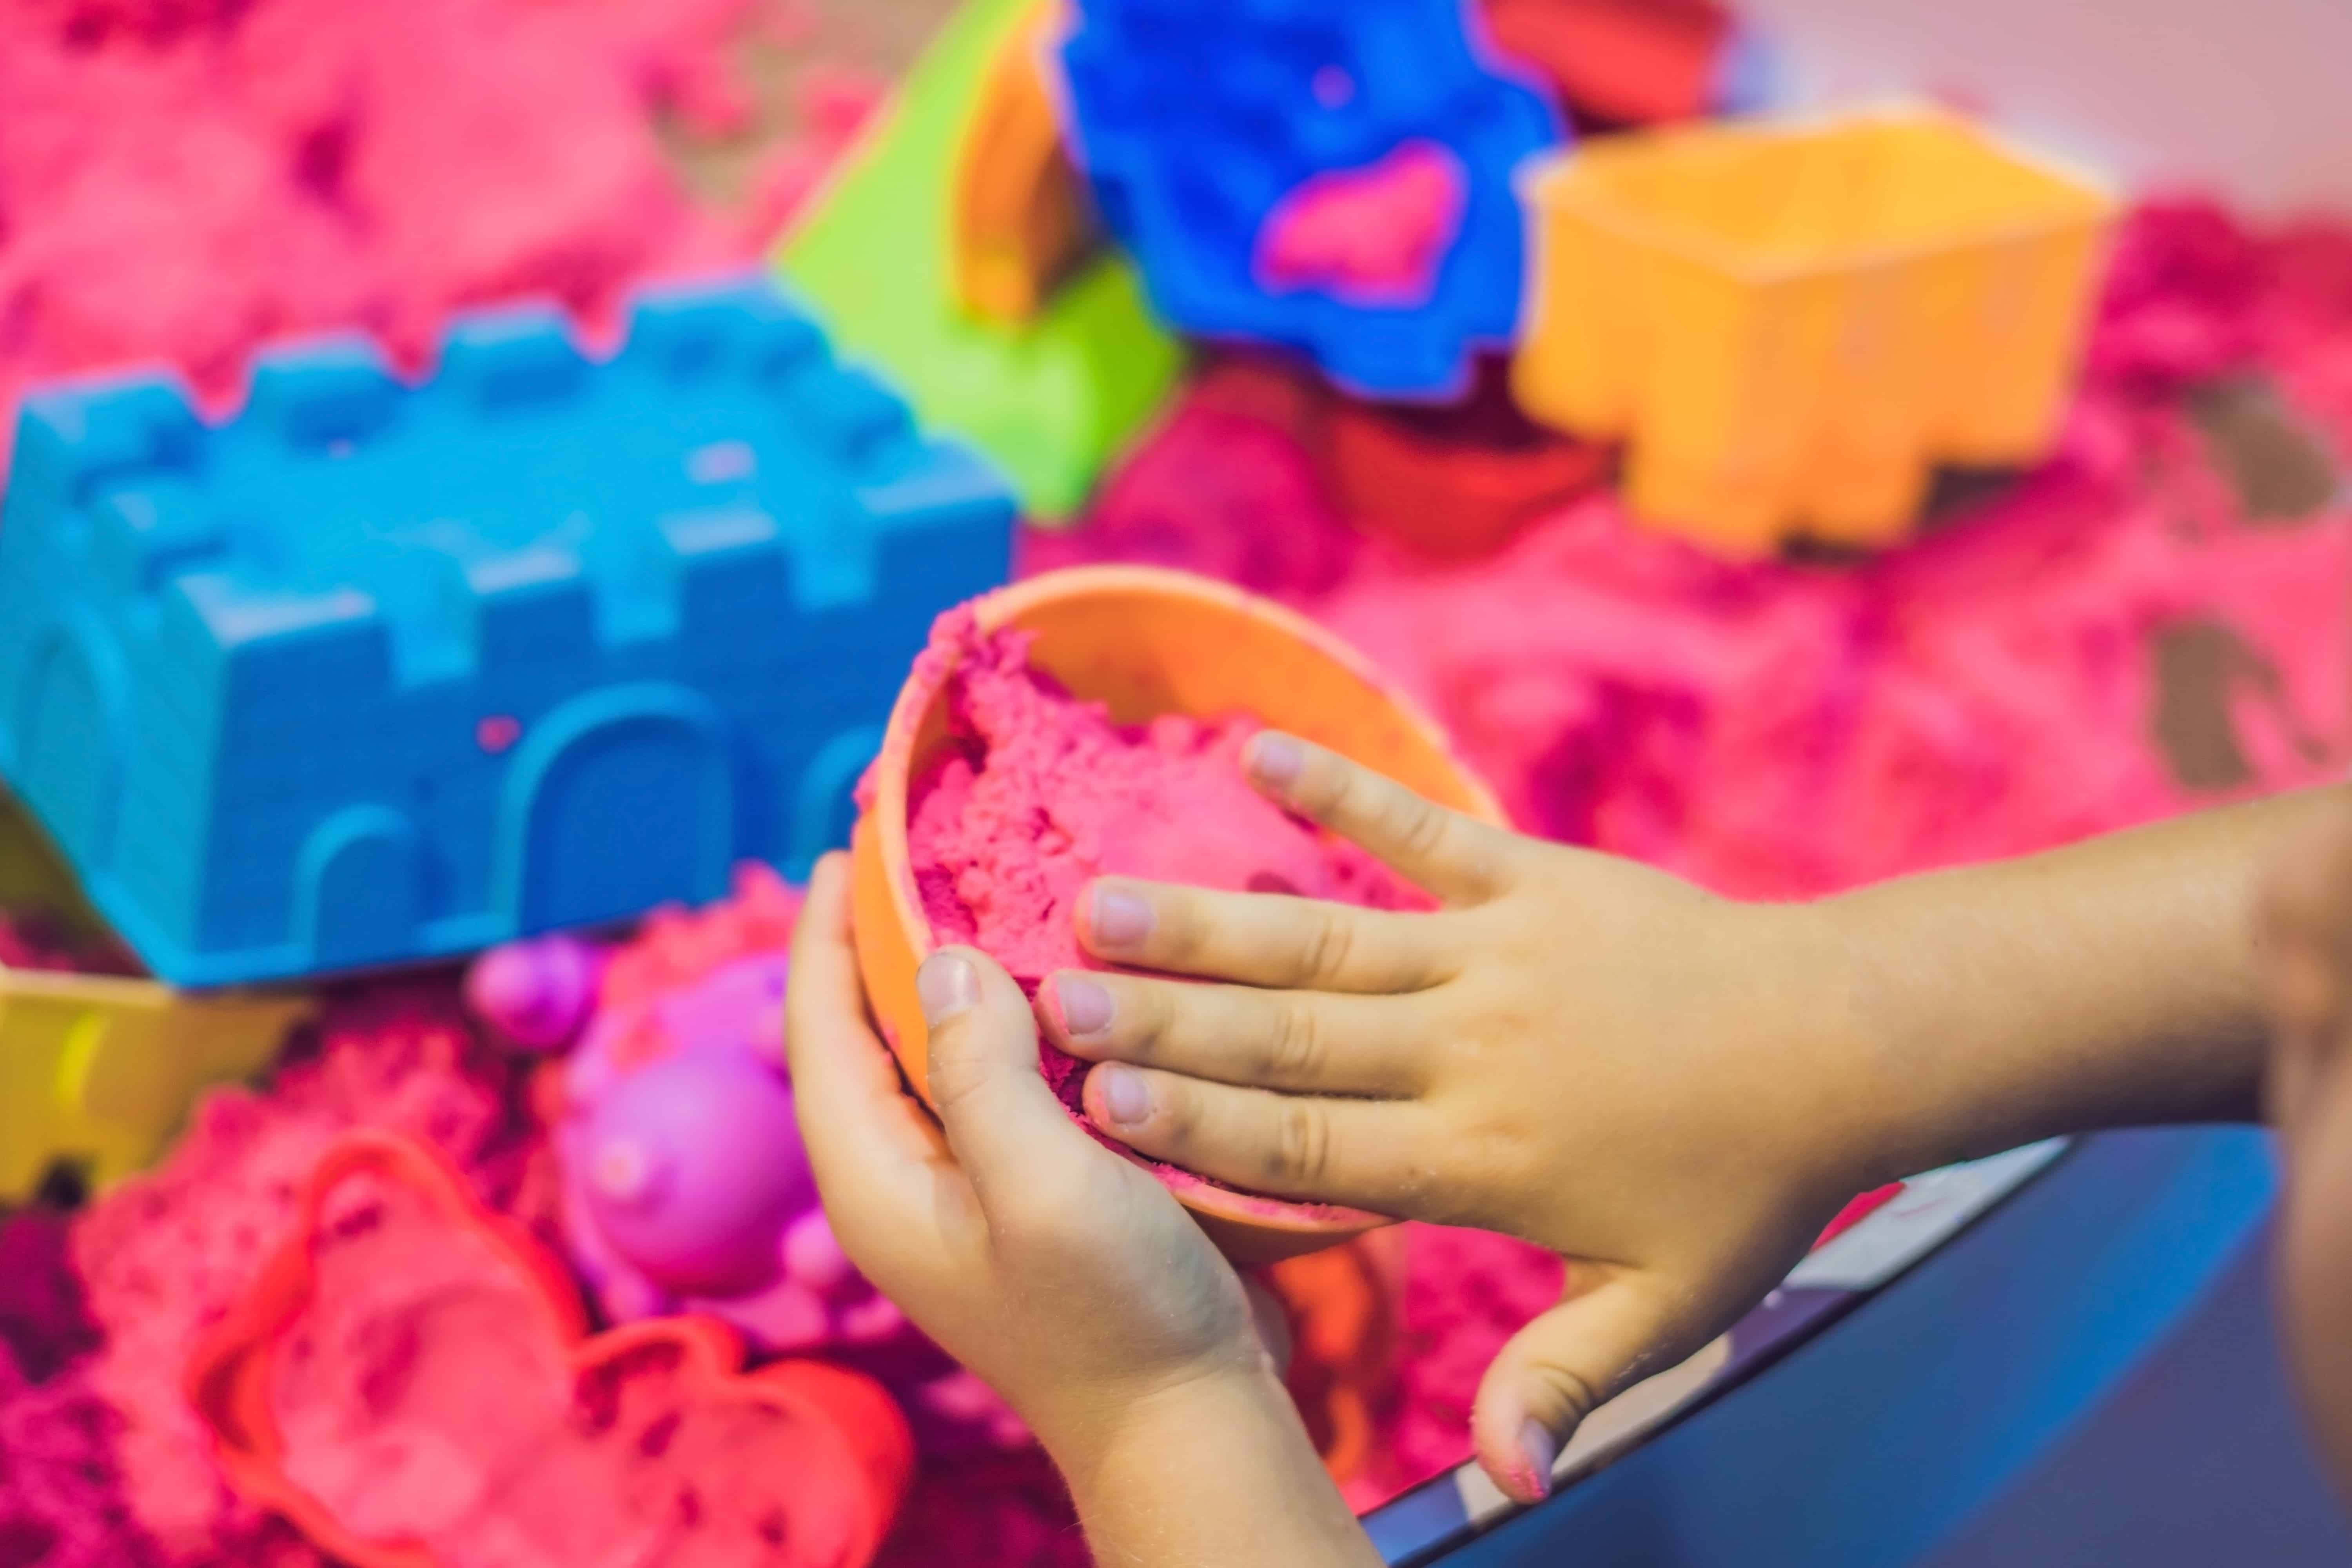 Child's hands molding kinetic sand into shape from kinetic sand play set